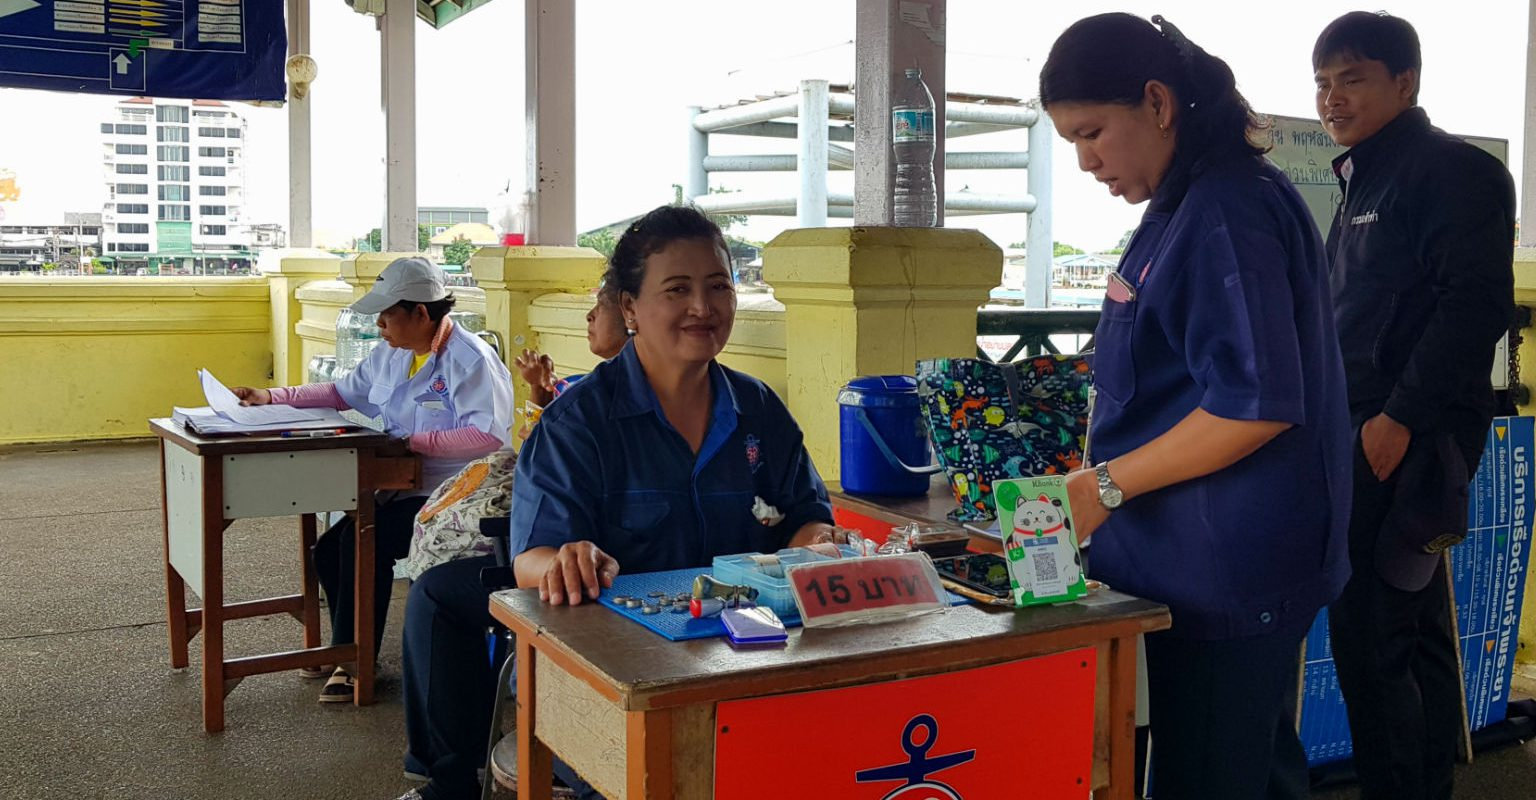 Friendly card seller of the Chao Phraya River boat in Bangkok, ticket 15 bath for the boat with orange flag.